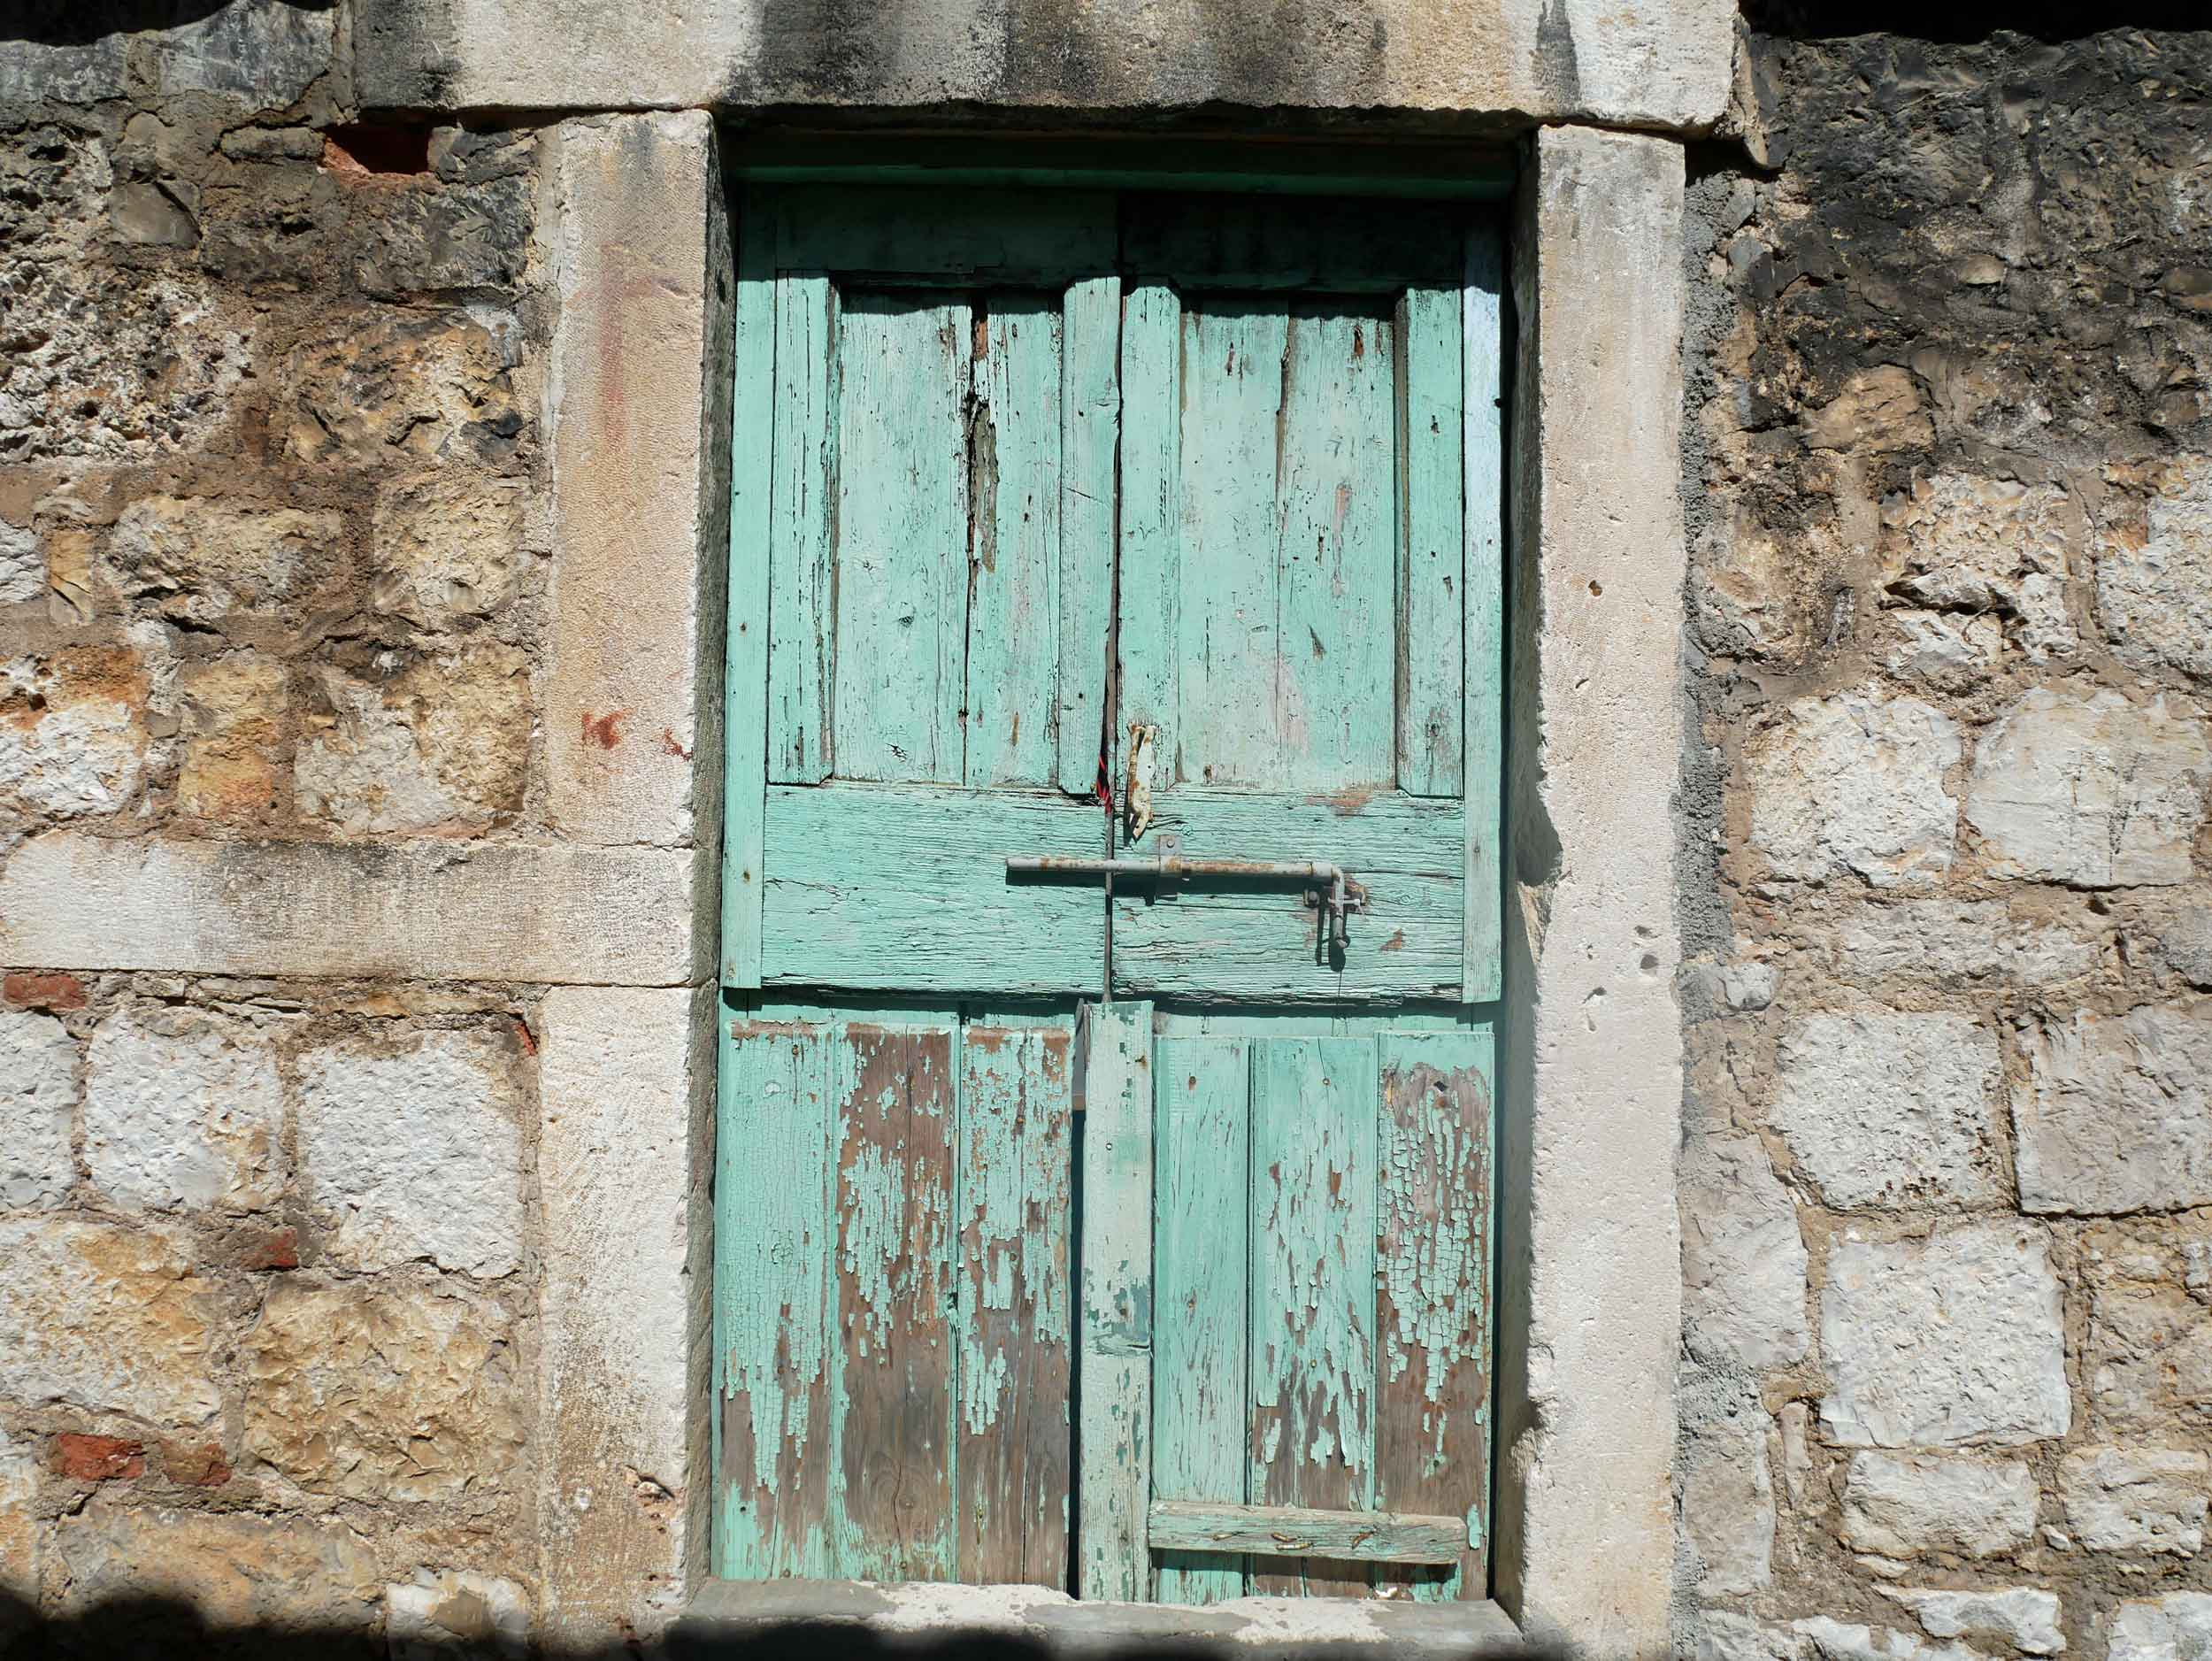 Doors and shutters throughout the village were painted a pale sea-foam green, which we adored.